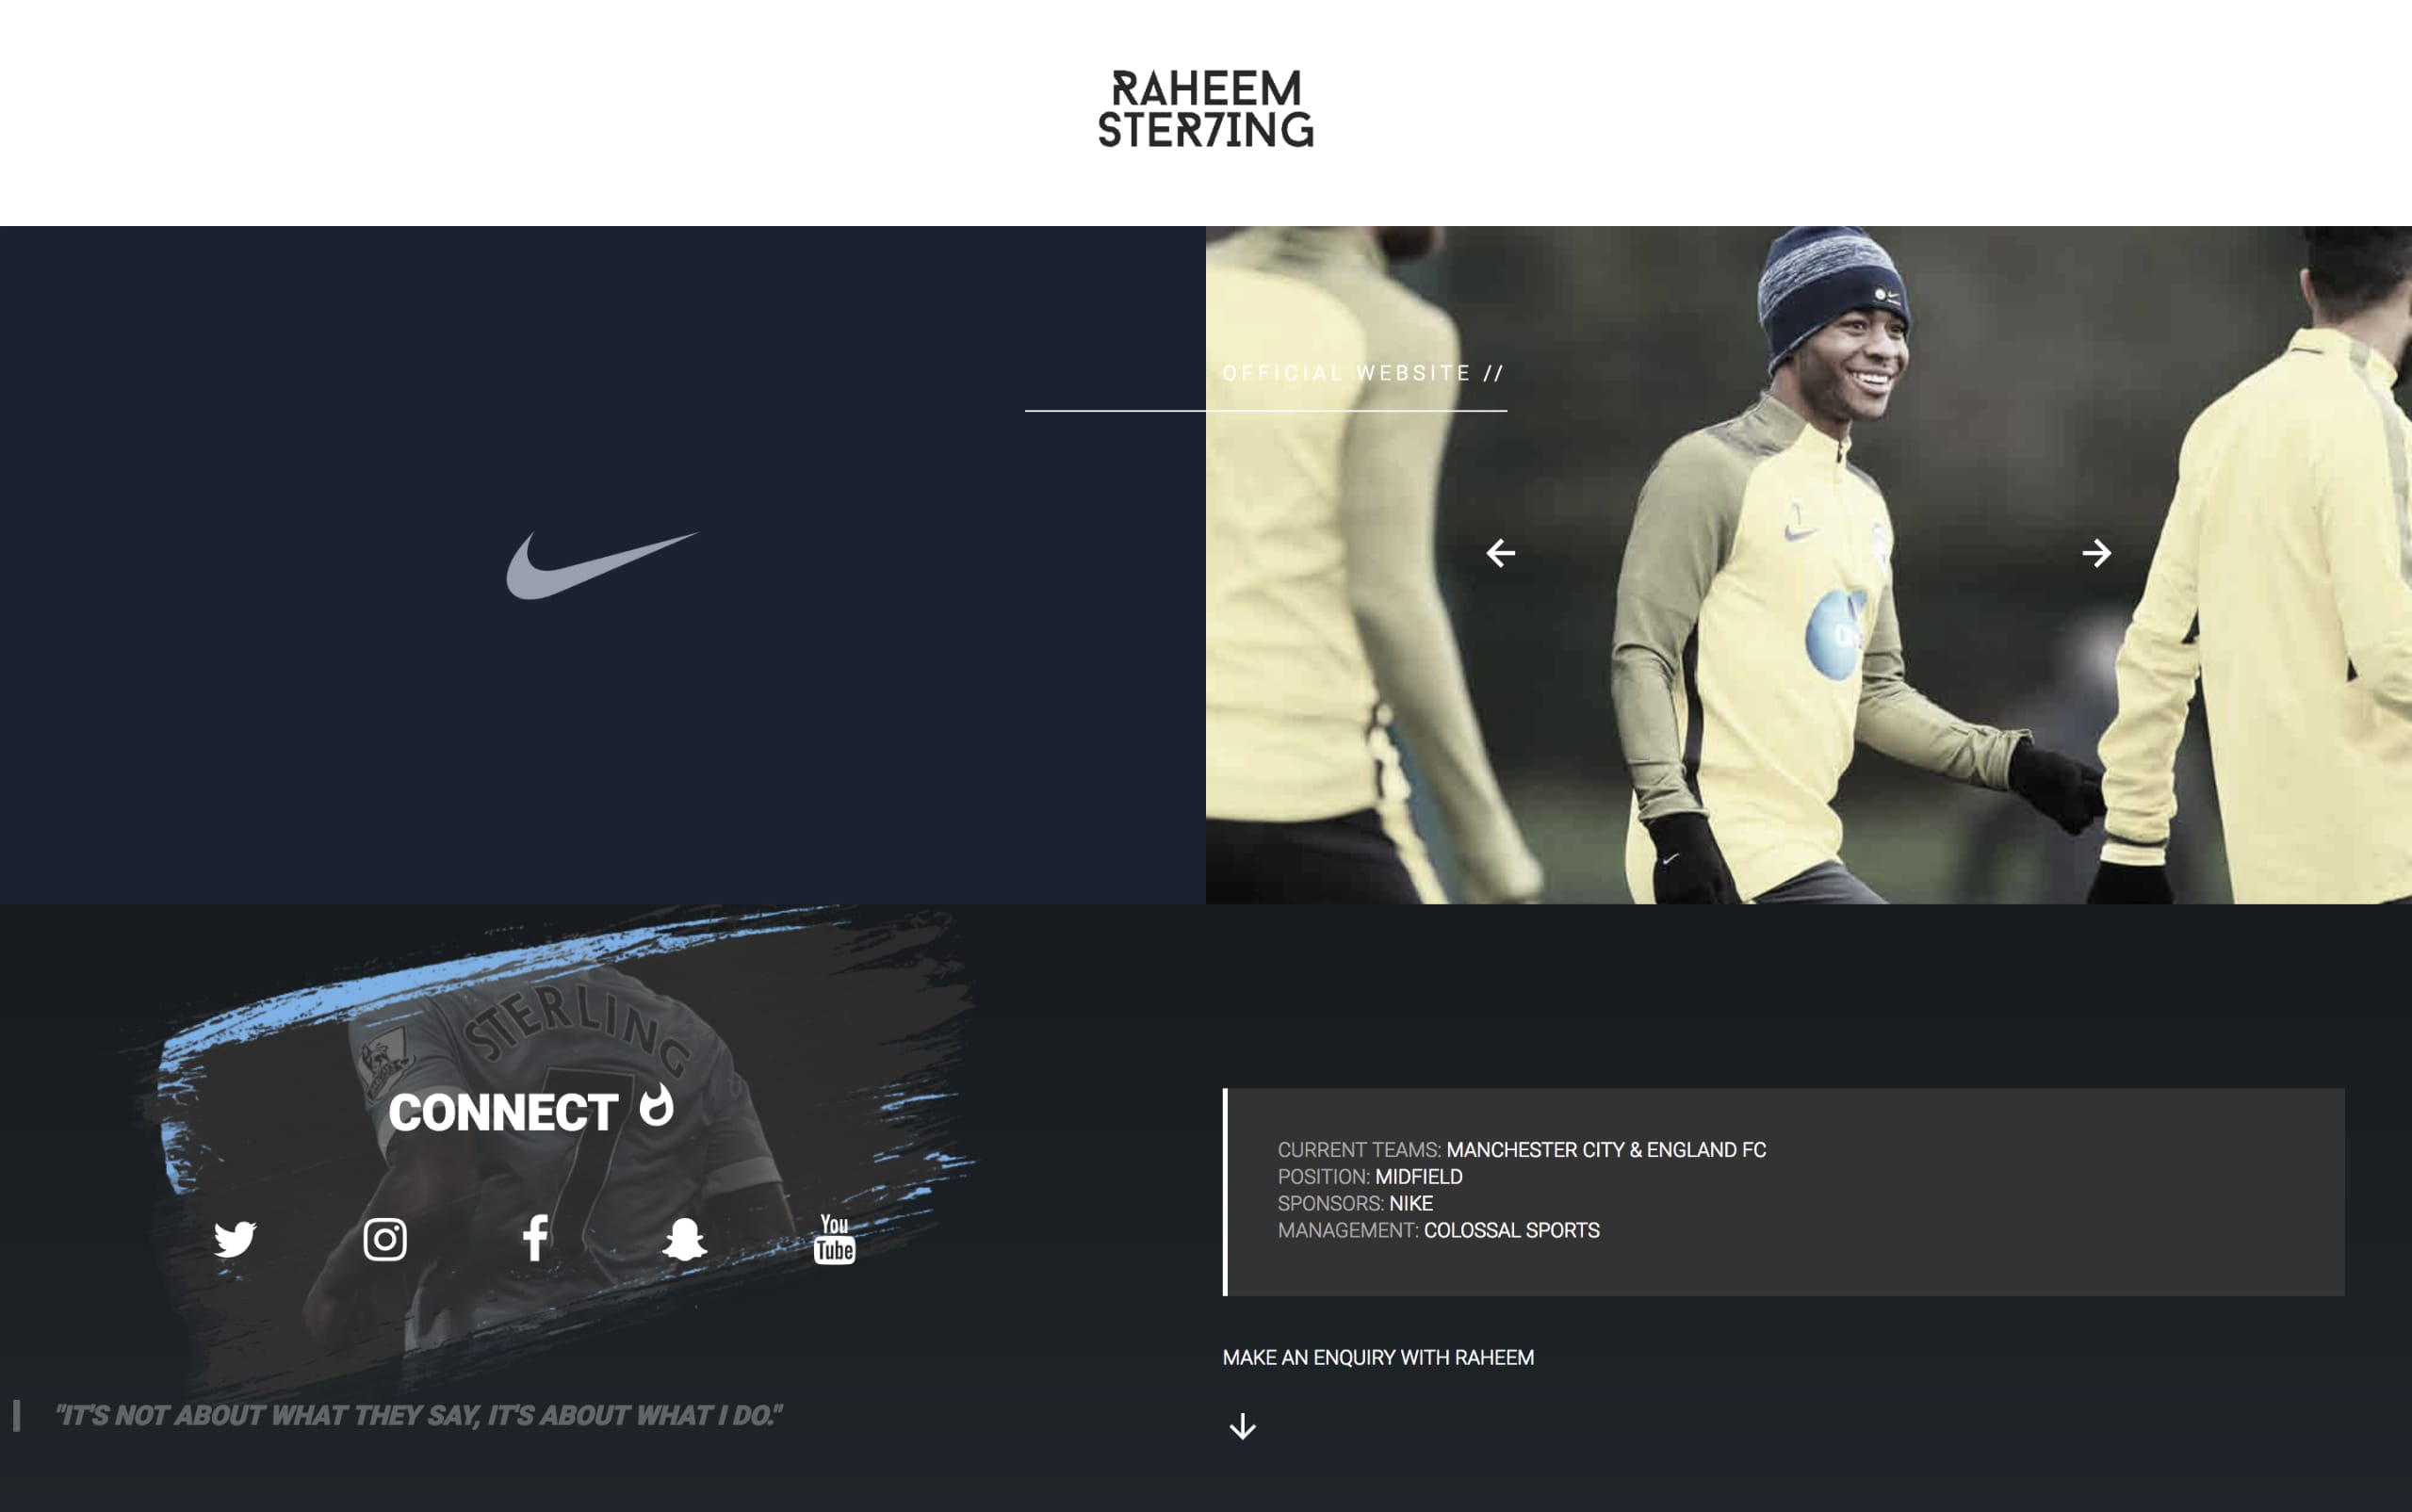 Raheem Sterling Website Screenshot